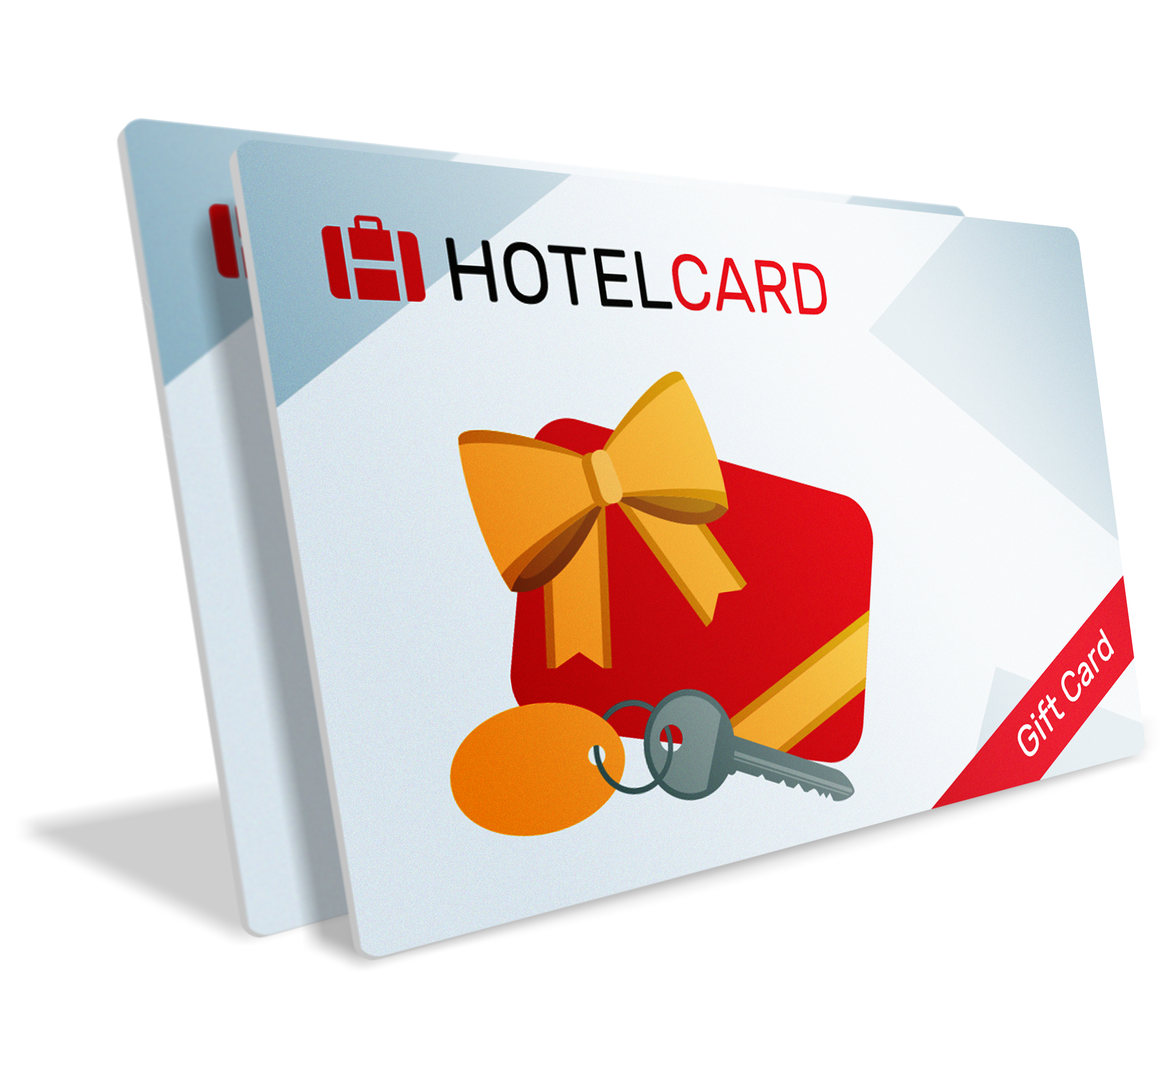 hotelcard gift card